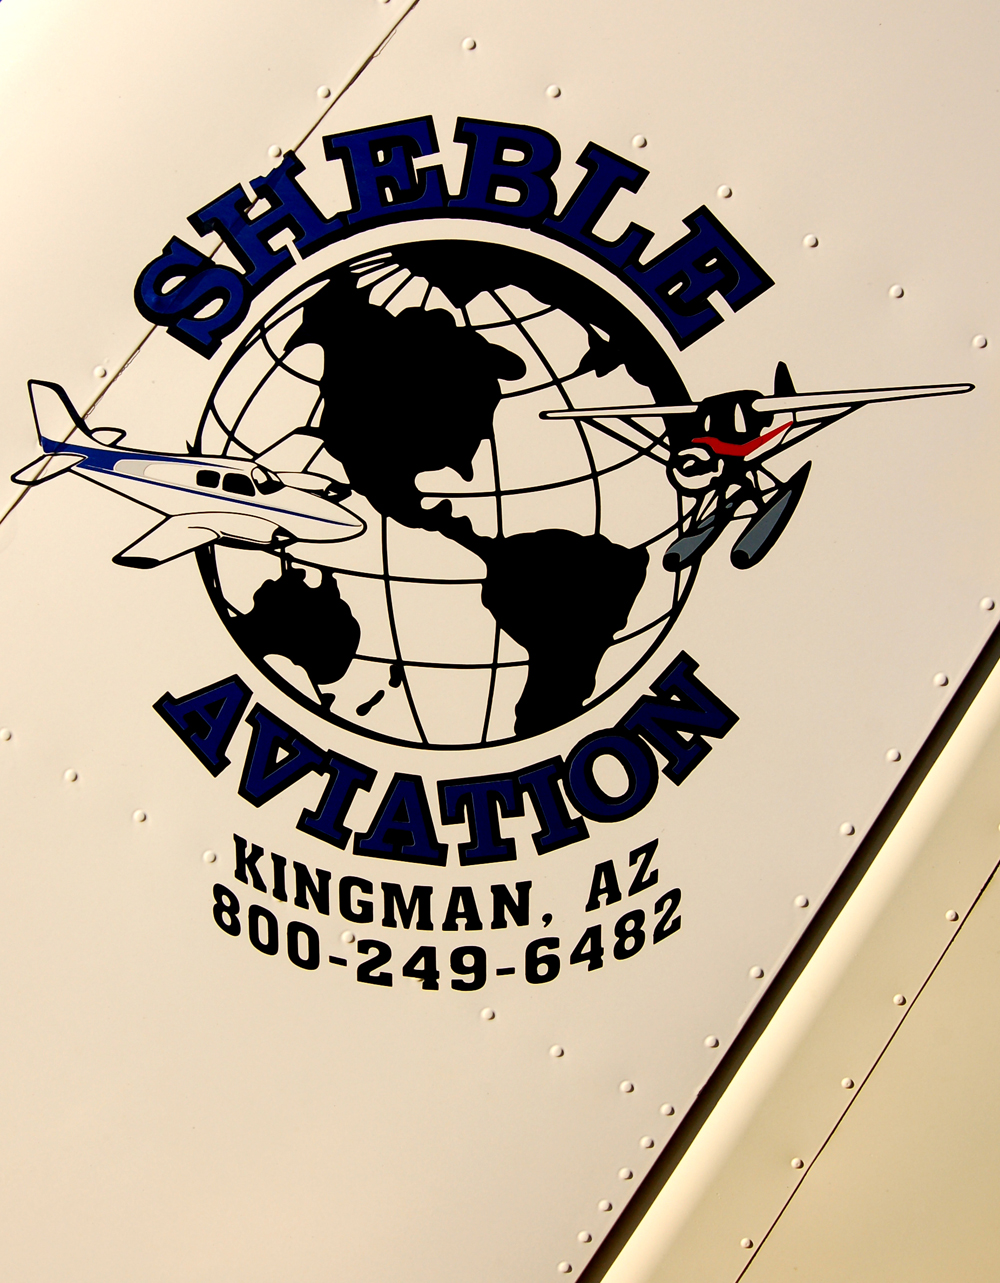 Sheble Aviation: An Oasis for Seaplanes in the Arizona Desert